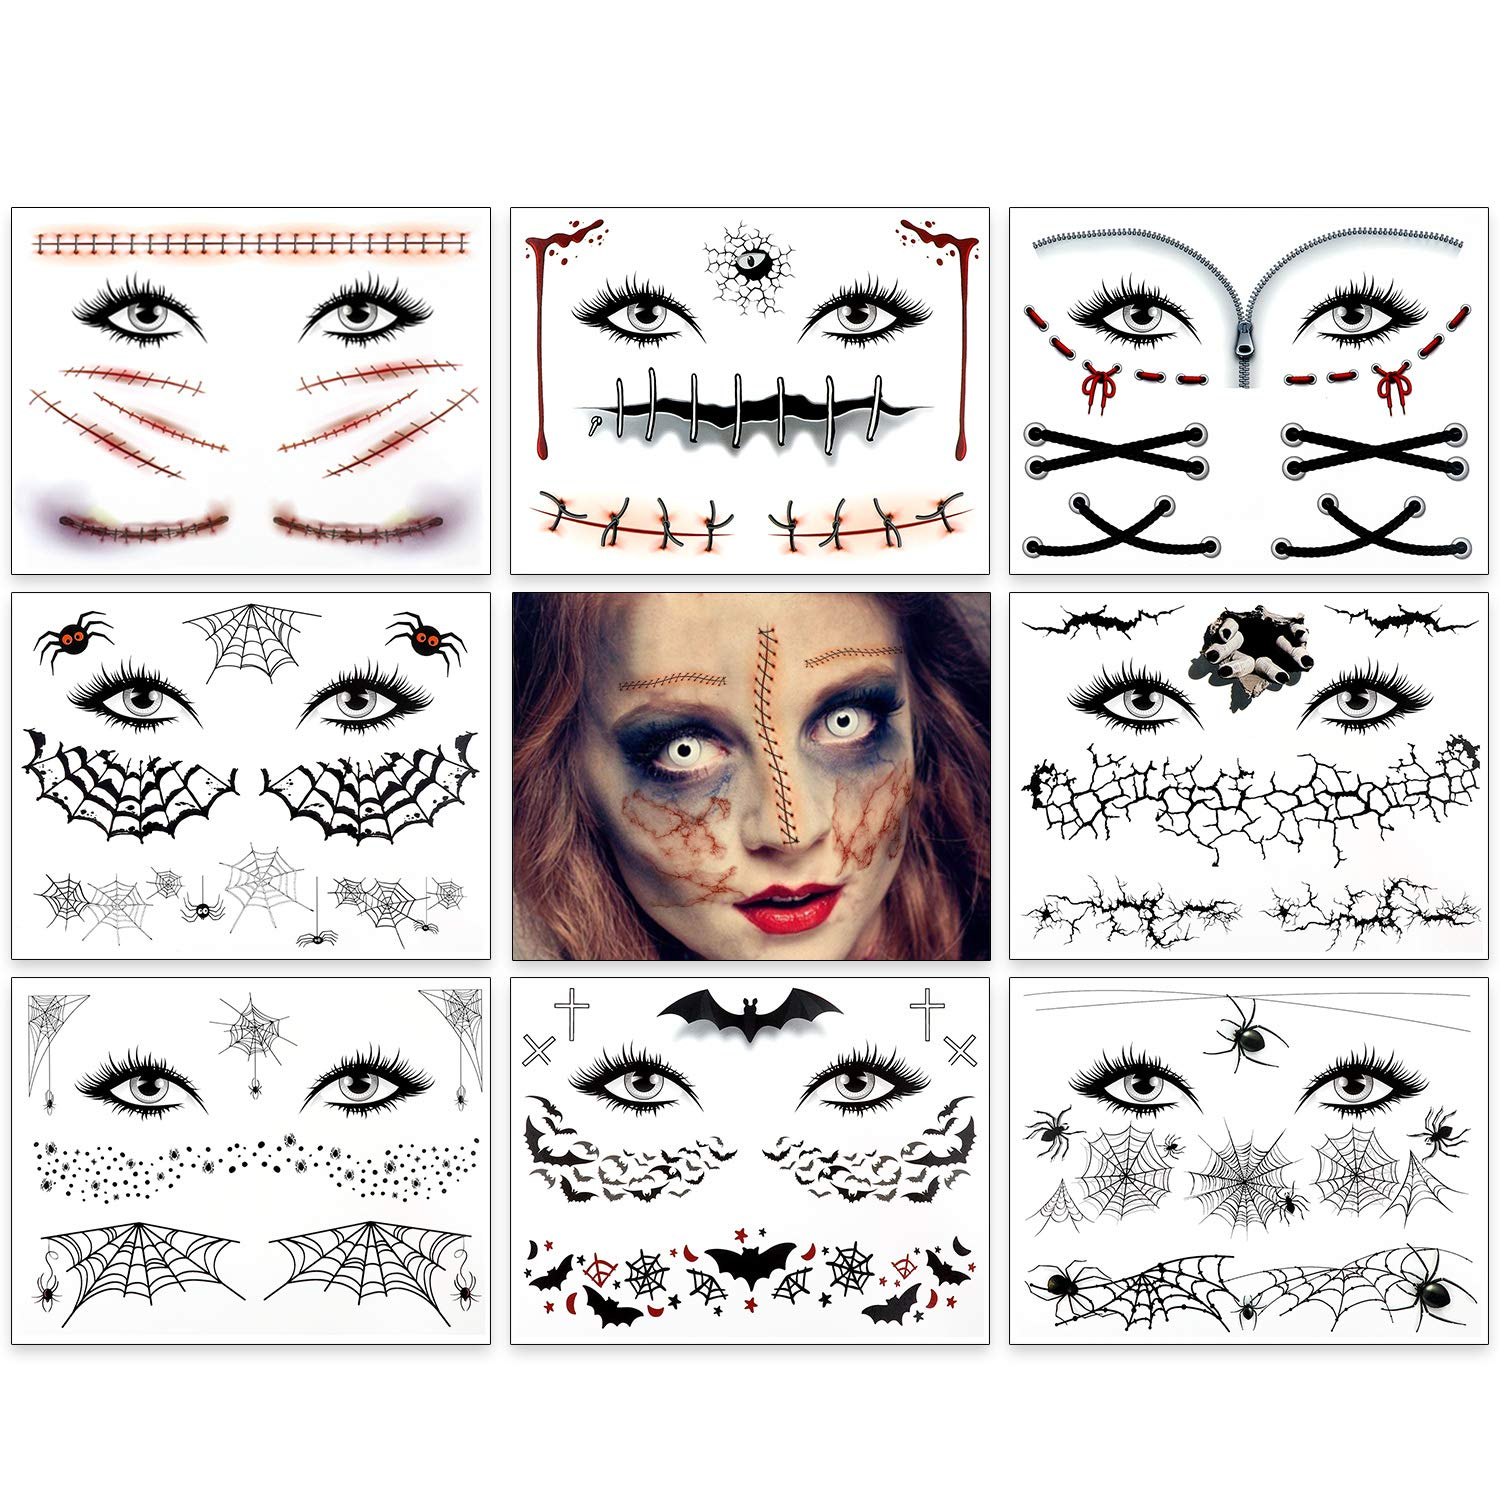 9 Pack Halloween Tattoos Crawling Spider Bat Tattoos Fake Scars Spider Net Spider Web Tattoos Halloween Face Temporary Tattoos Stickers for Women Men Halloween Costume Party Make-Up Favor Props